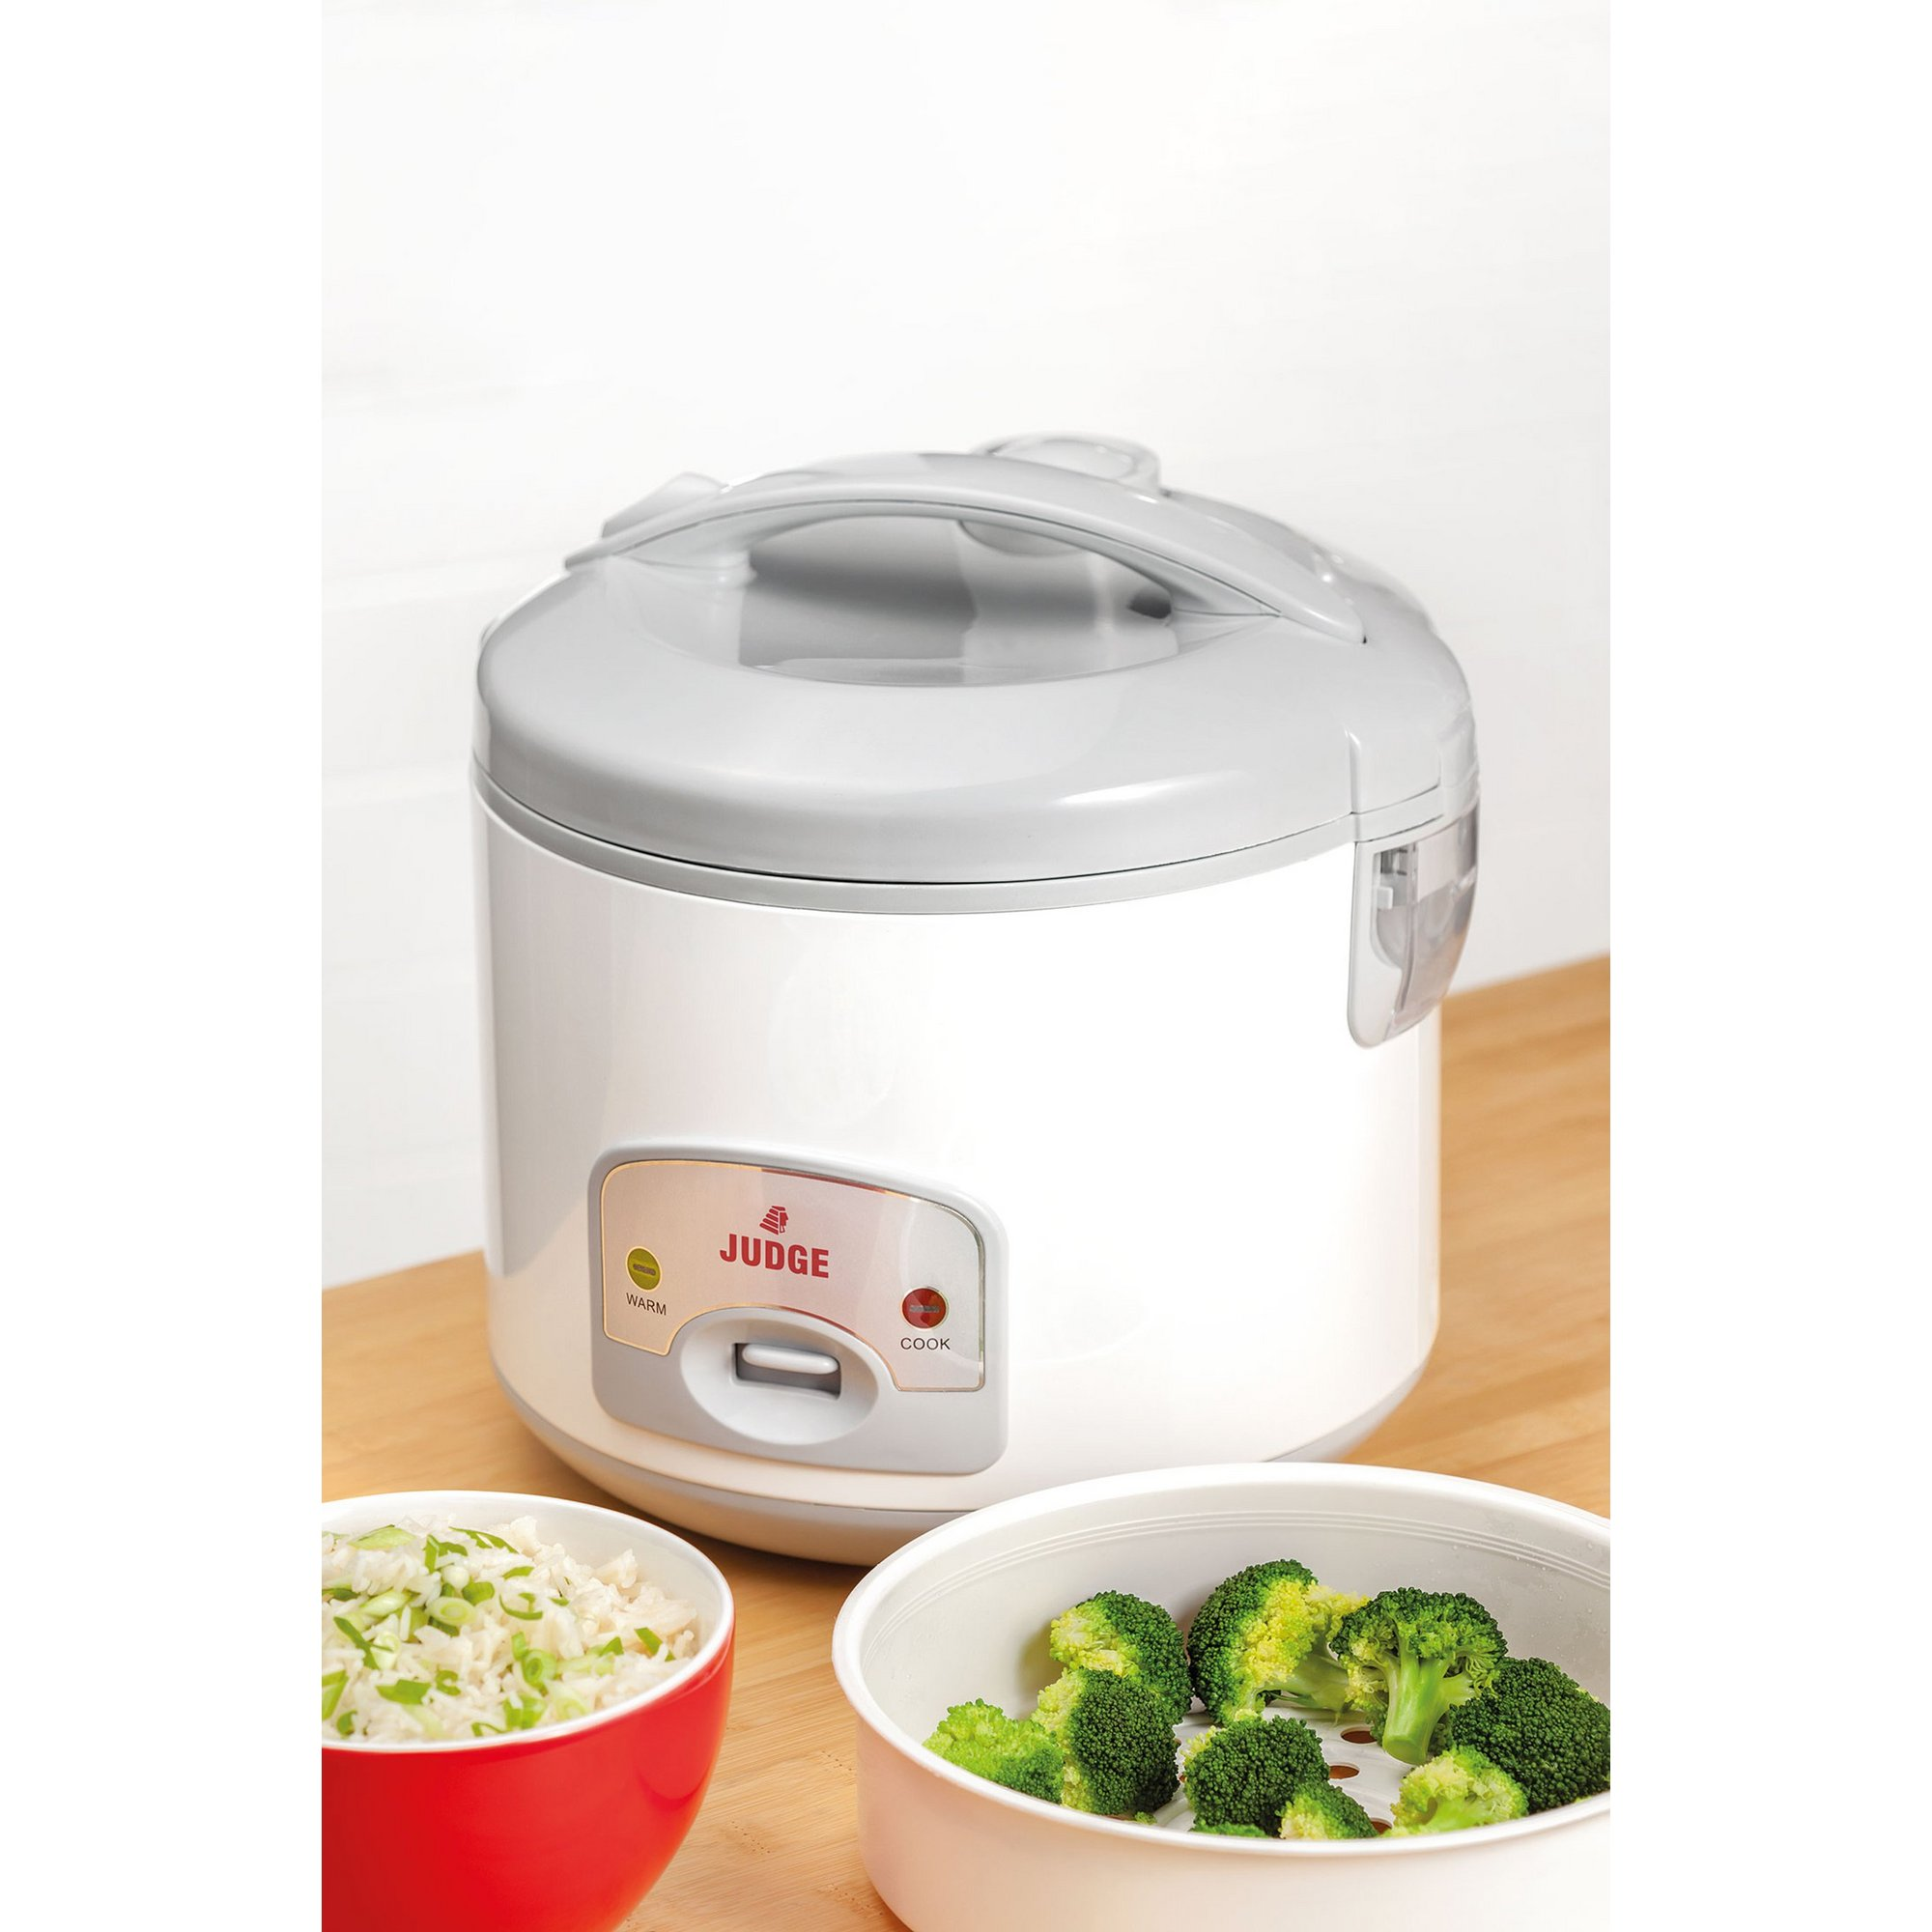 Image of Judge 1.8L Family Rice Cooker